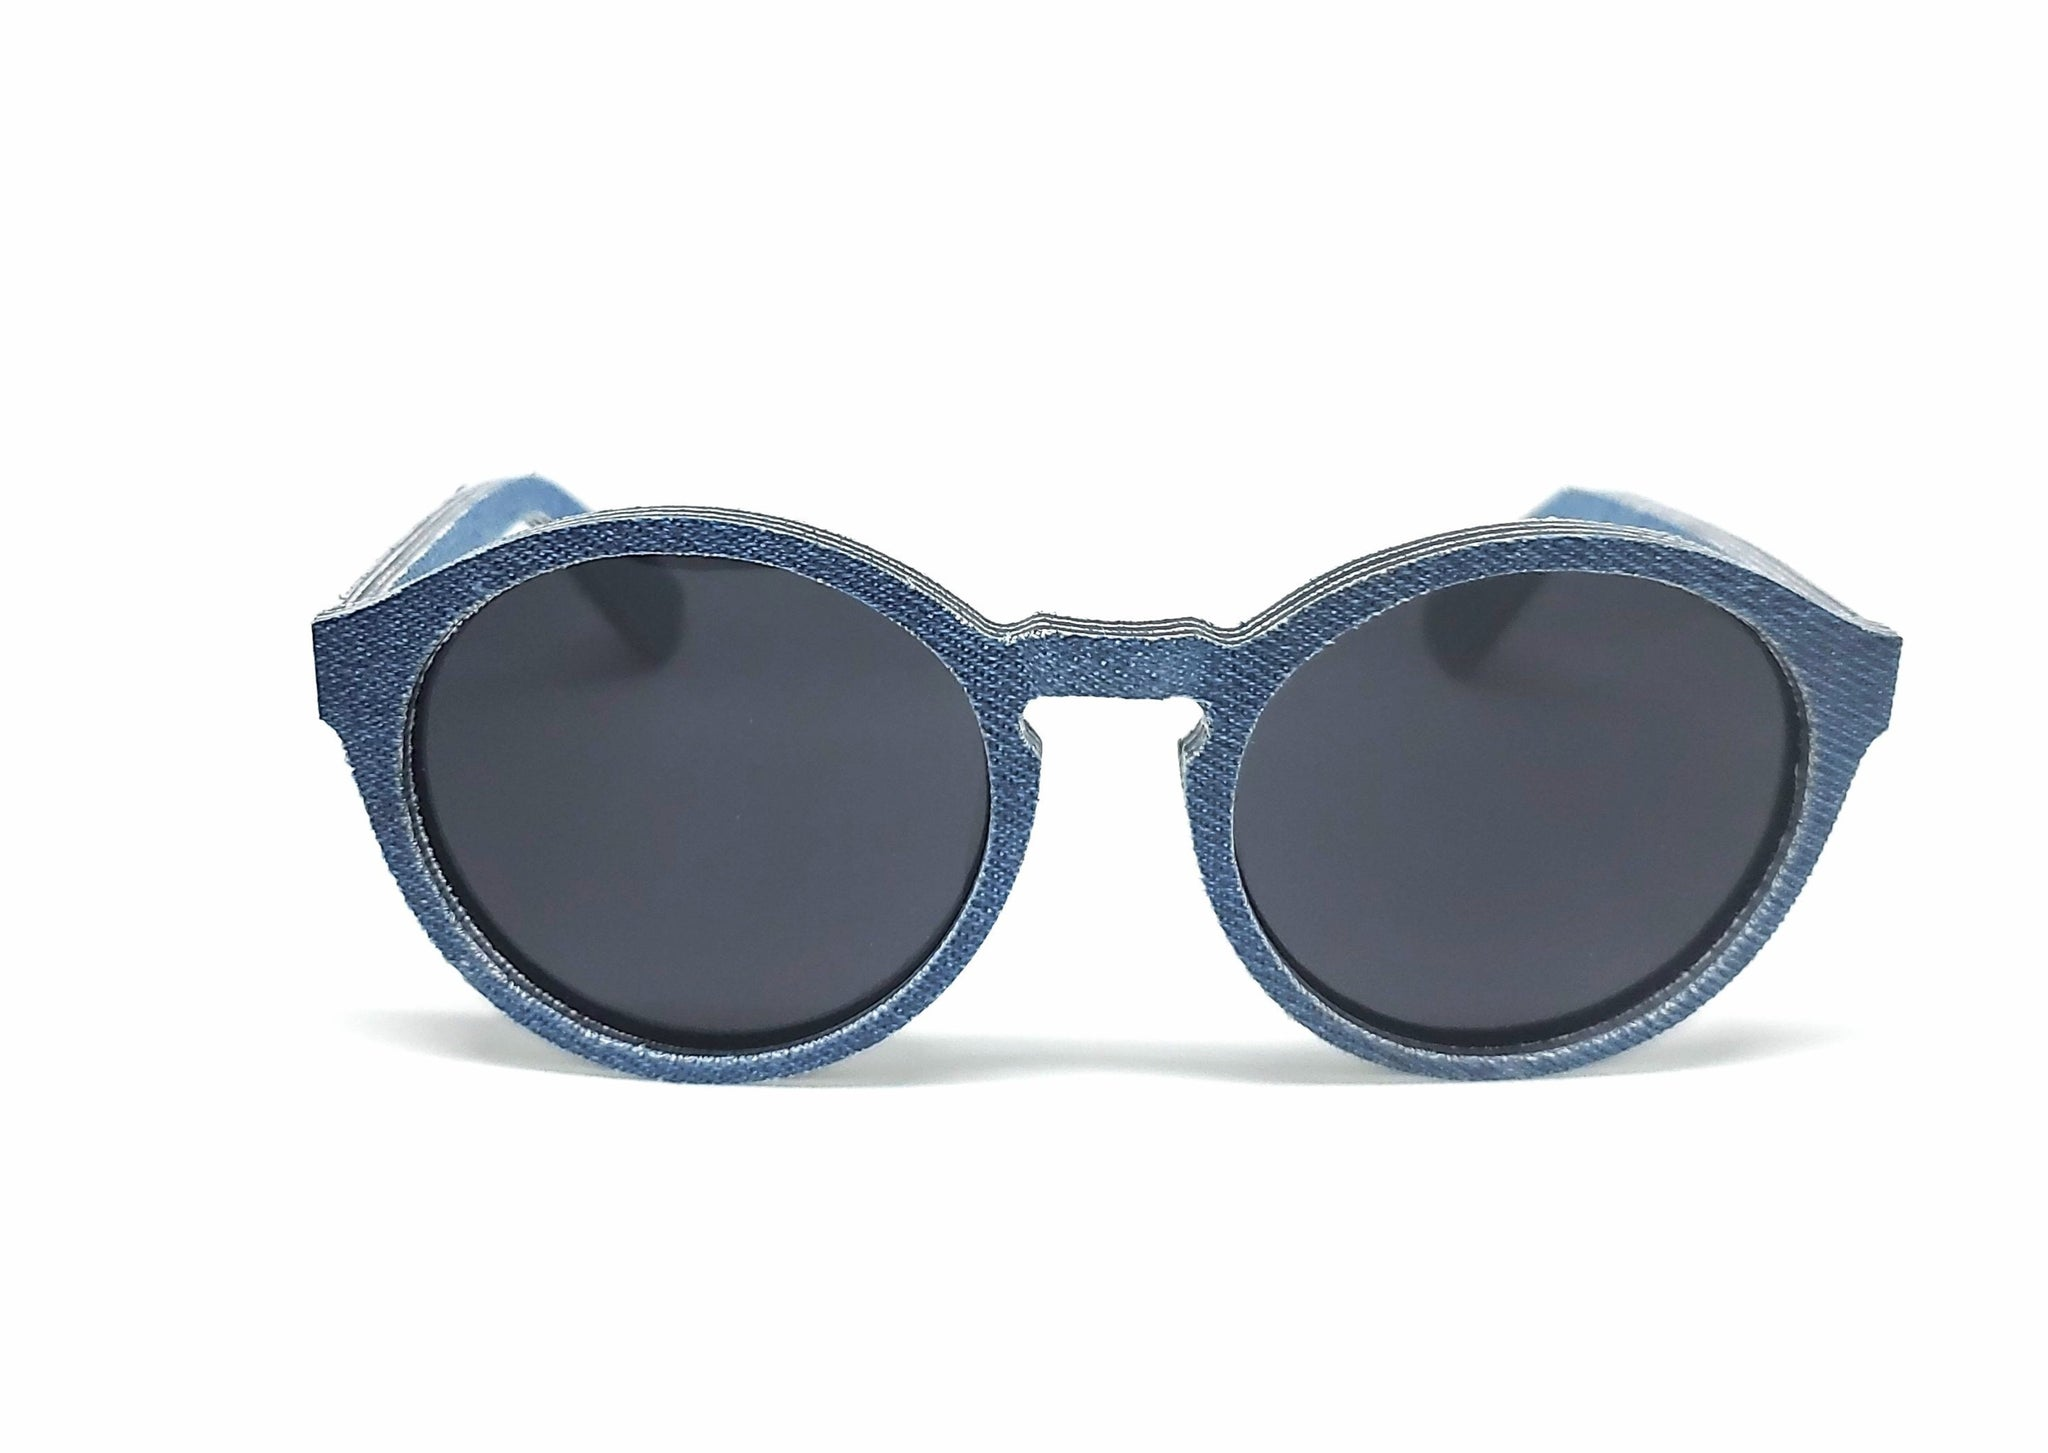 Sunglasses Denim/Acetate The Kevin